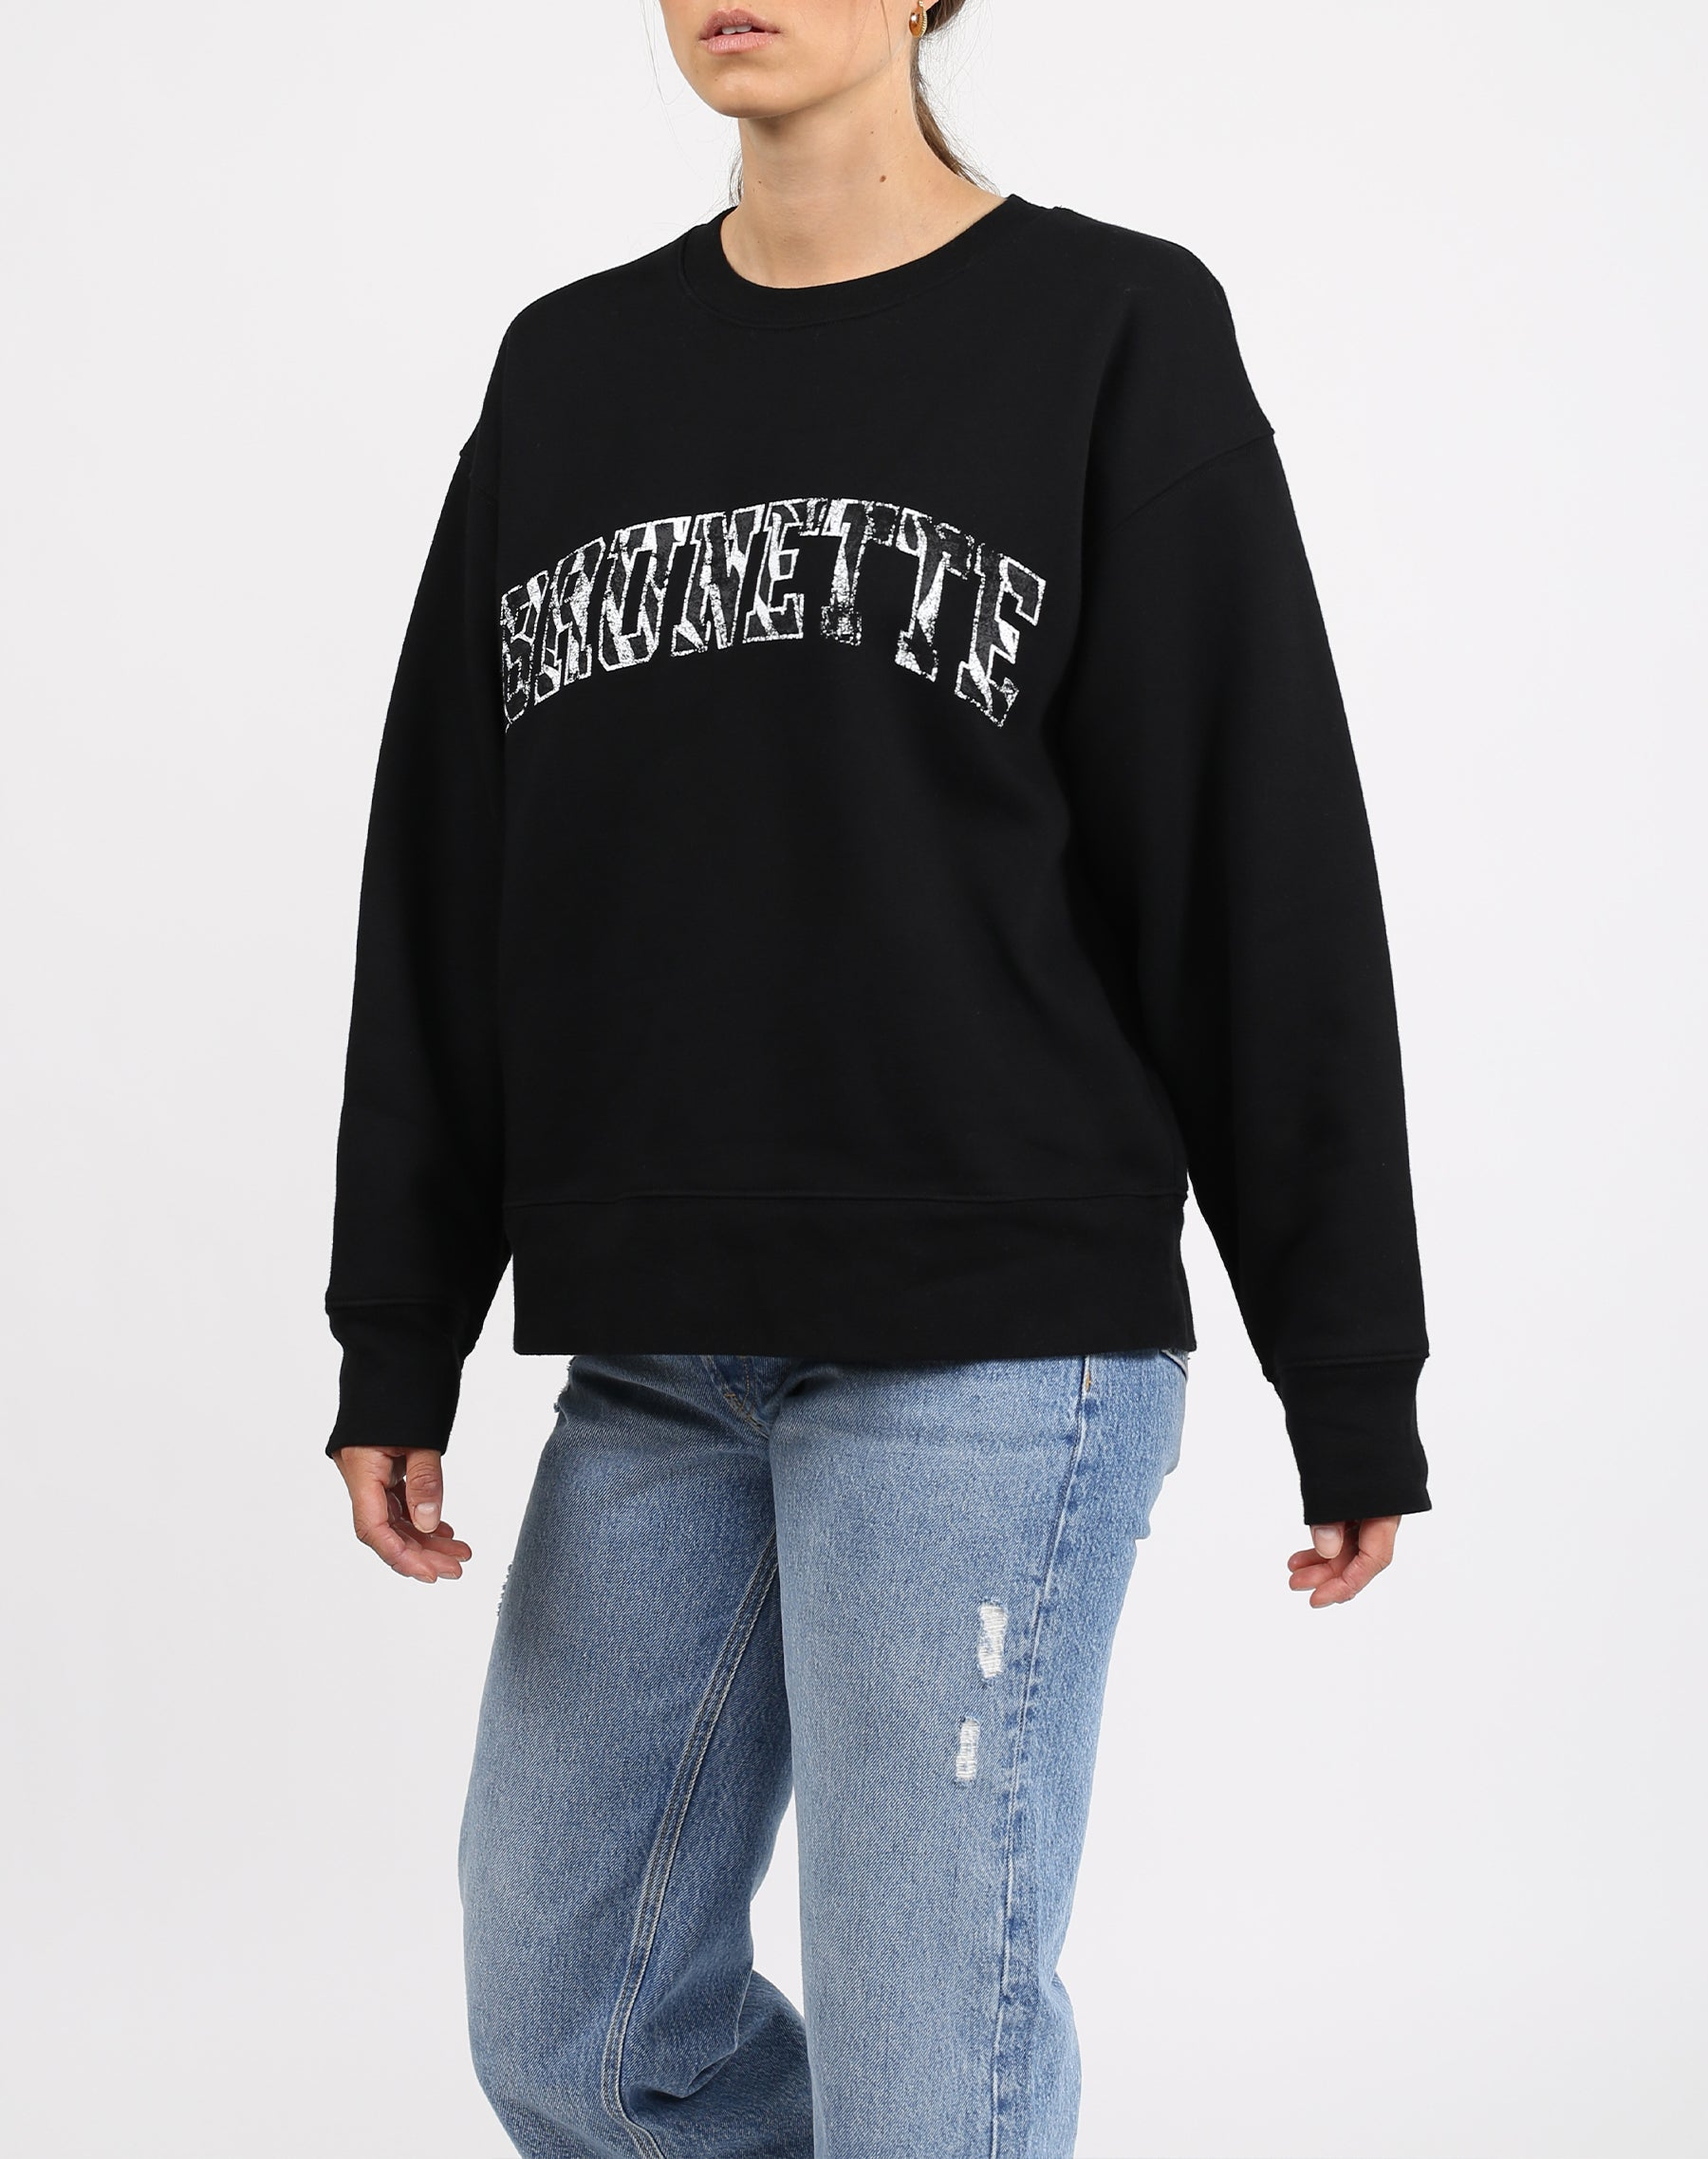 This is an image a model wearing the Brunette Zebra Varsity Step Sister Crew Neck Sweatshirt in Black by Brunette the Label.